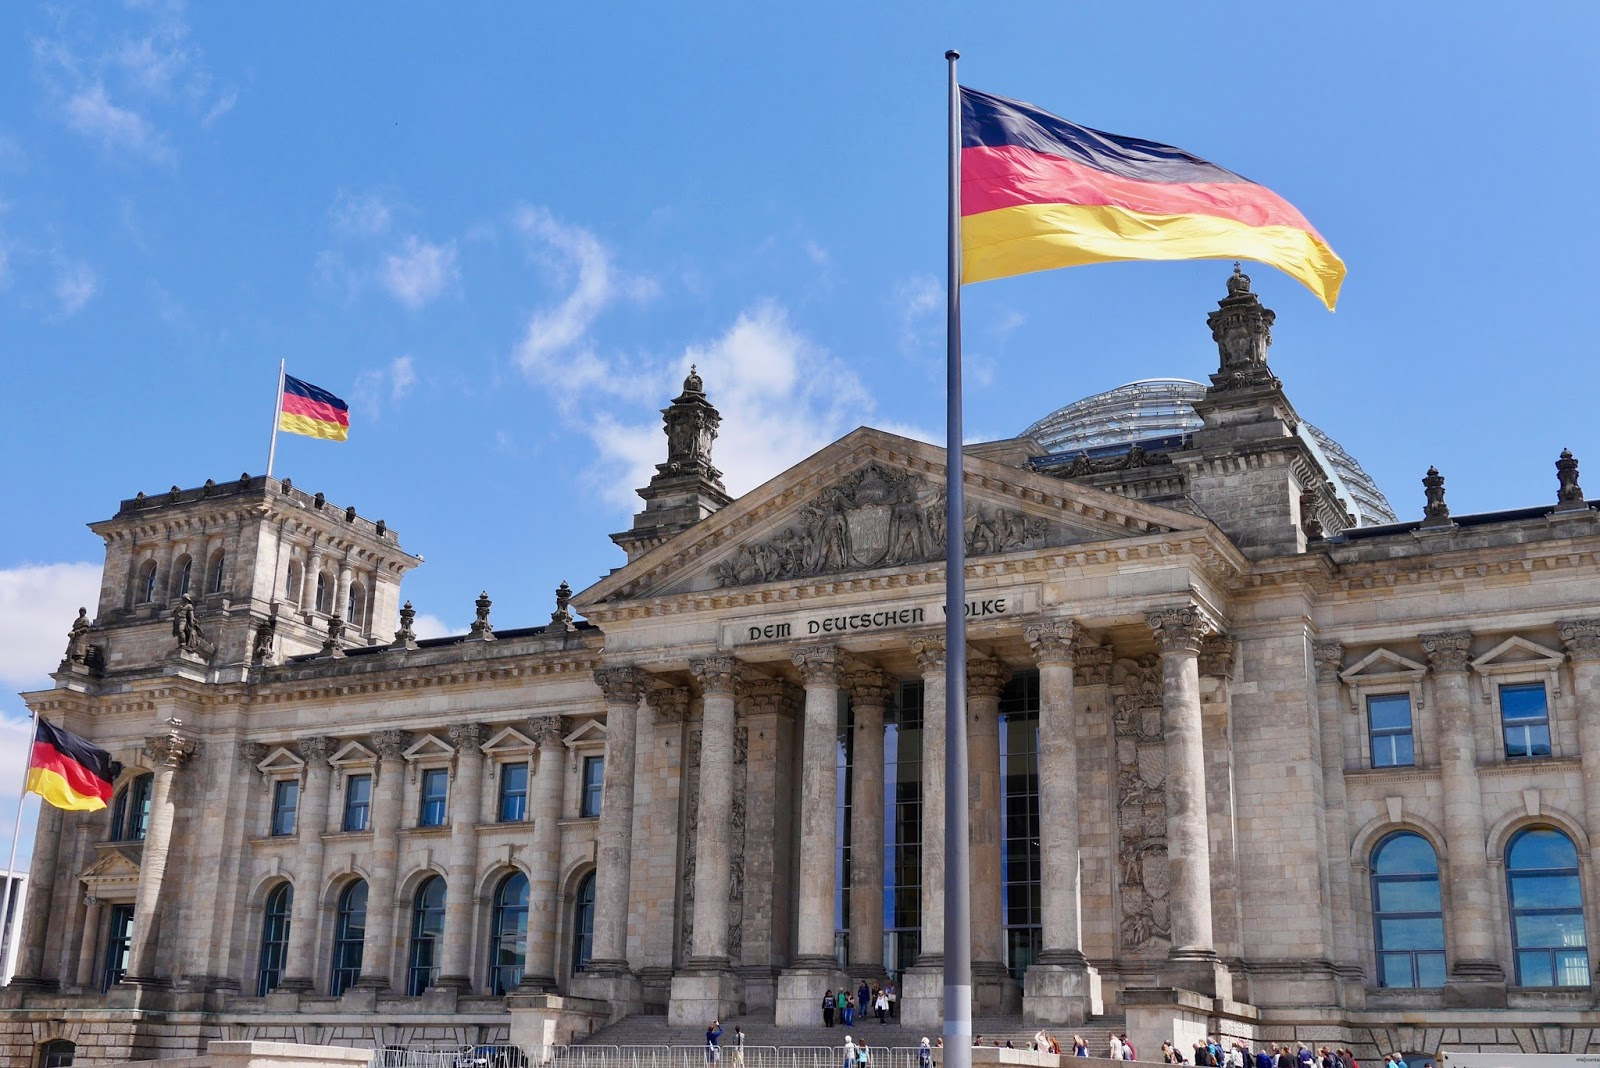 Outside the Reichstag building in Berlin with huge flags, by www.CalMcTravels.com. Cal McTravels